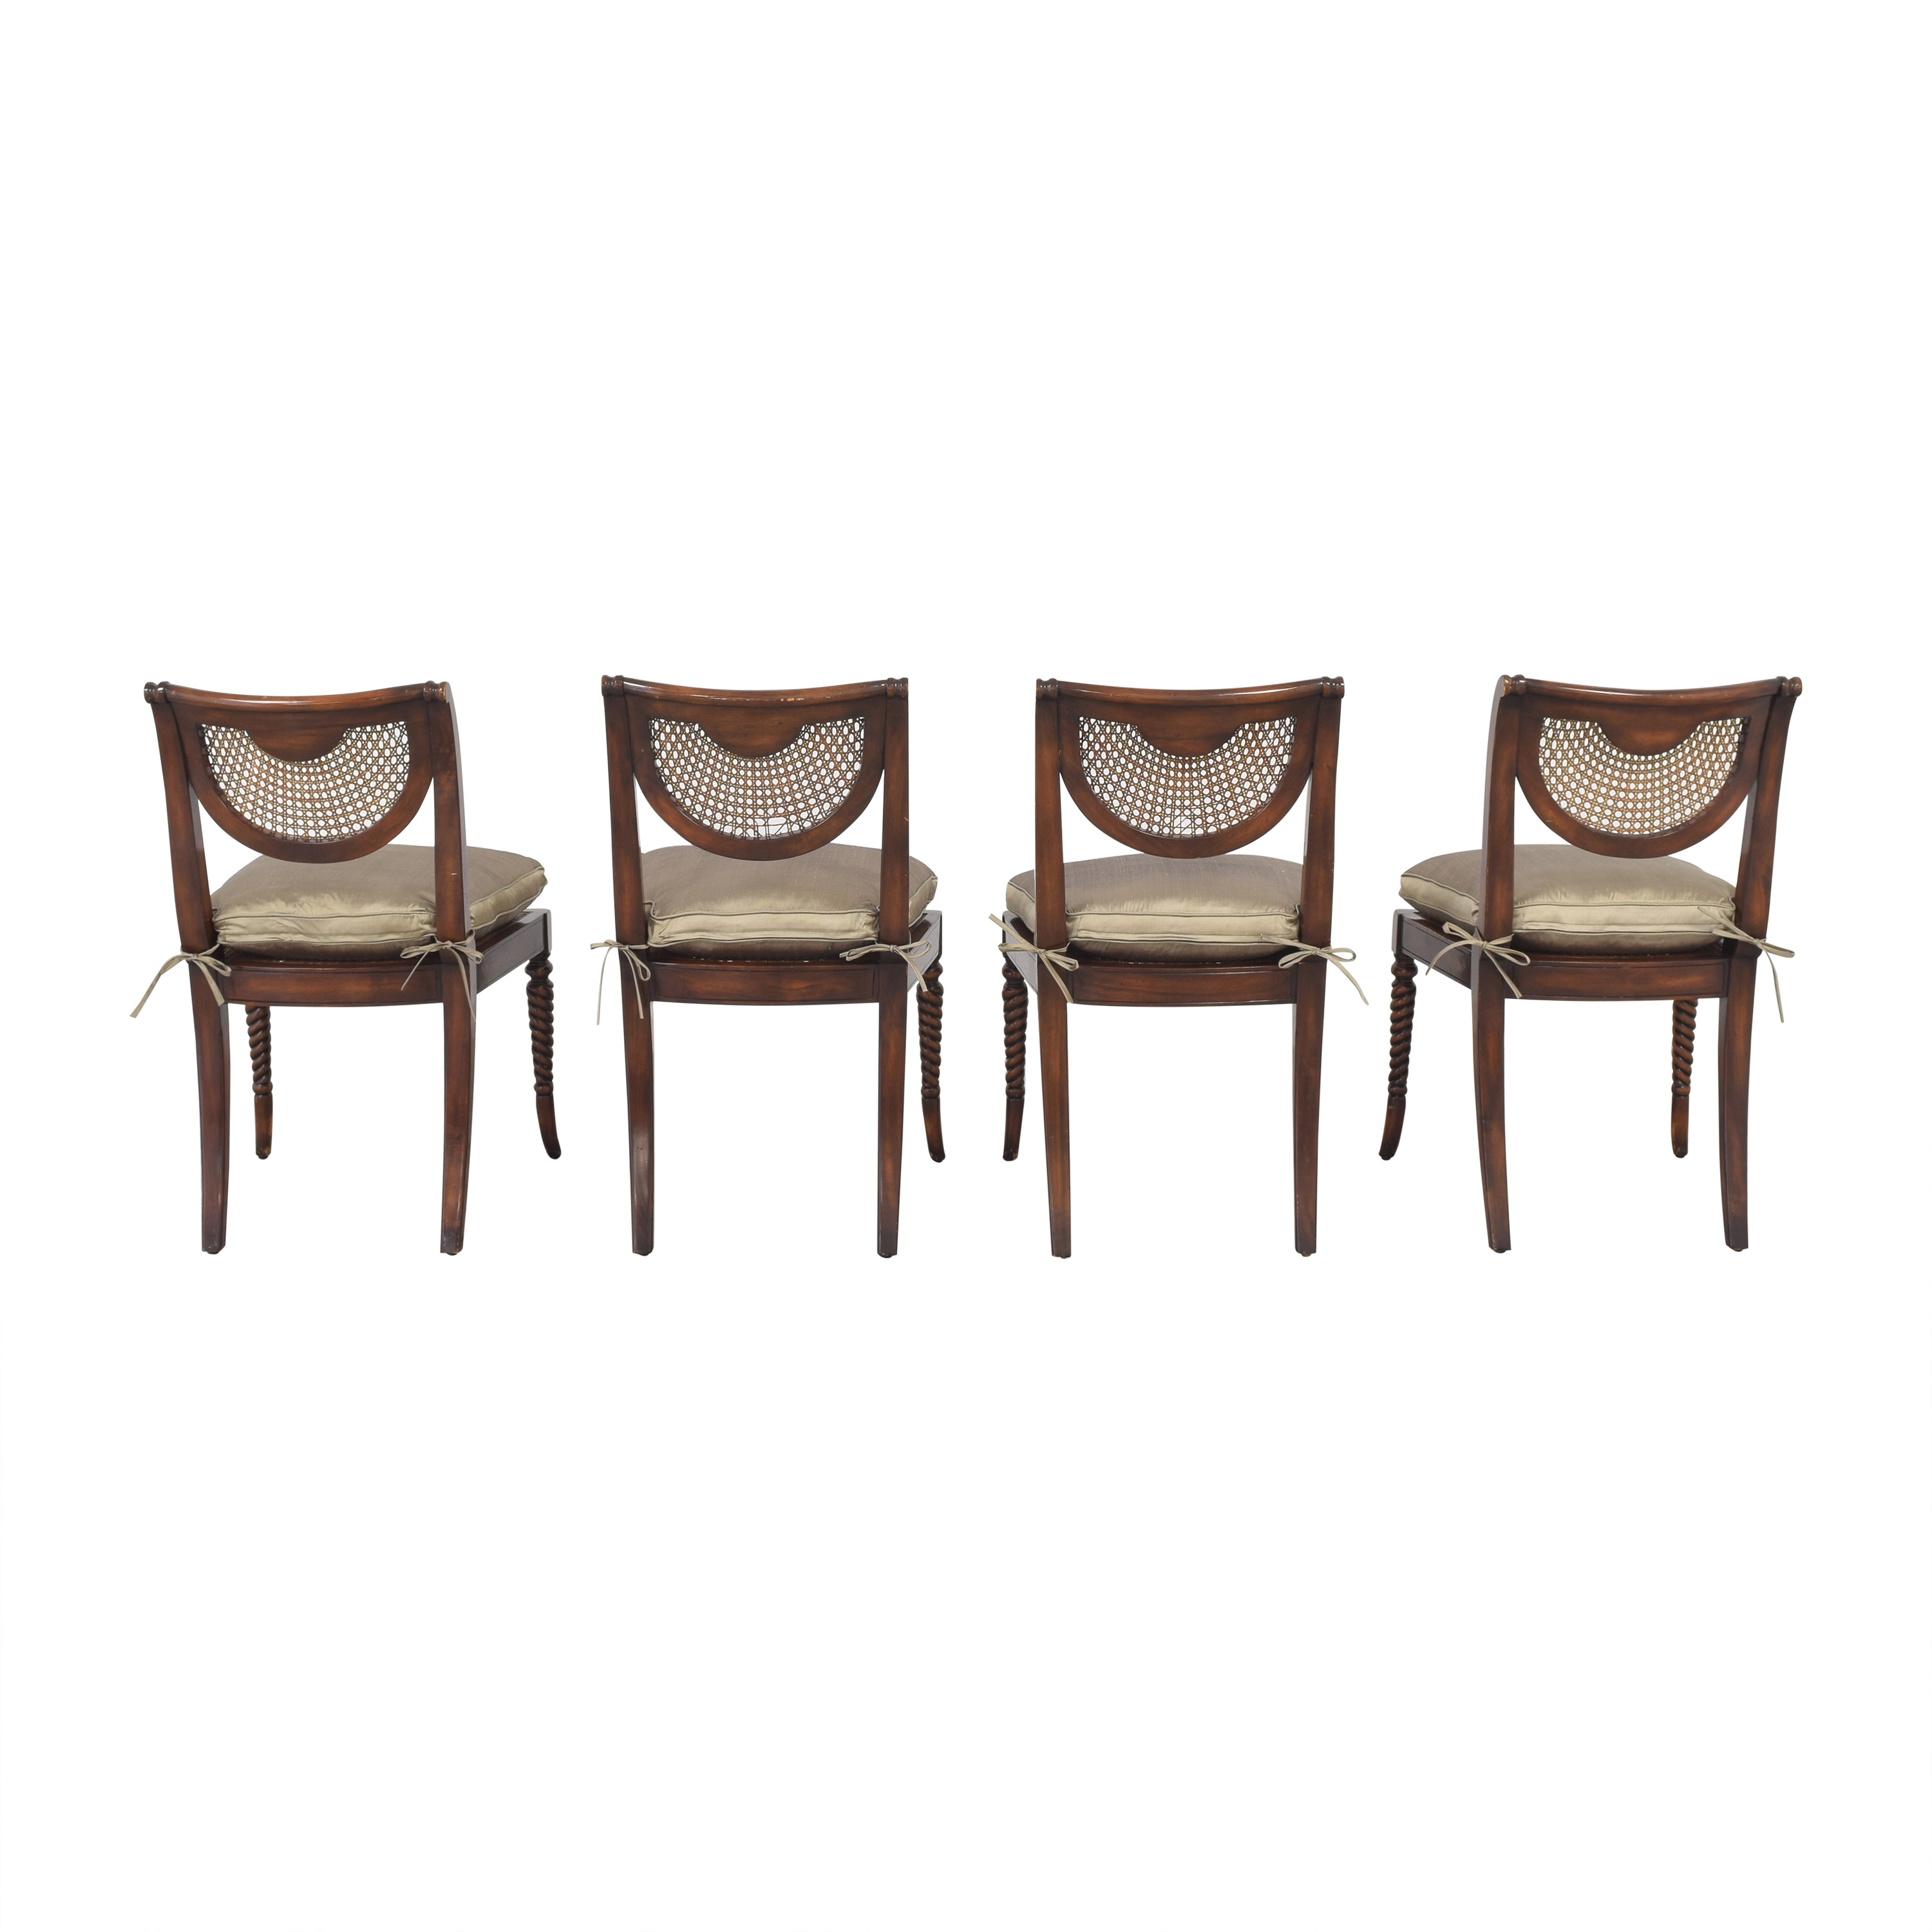 ABC Carpet & Home Dining Chairs / Dining Chairs